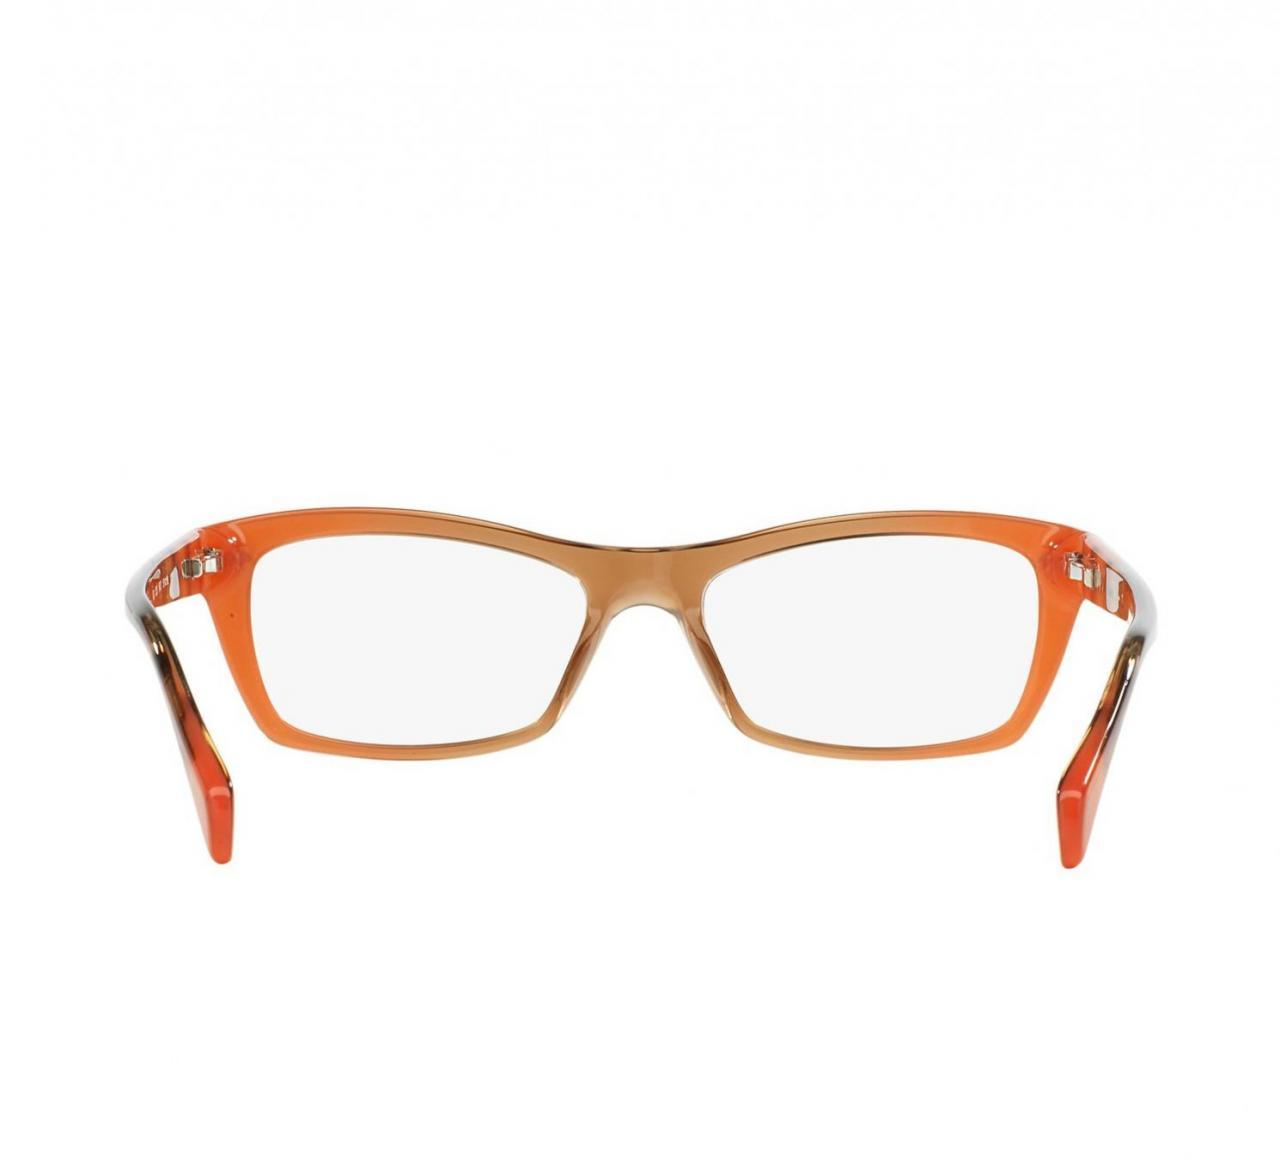 Ray Ban Eyeglasses RB5255 5487 Rx-ABLE